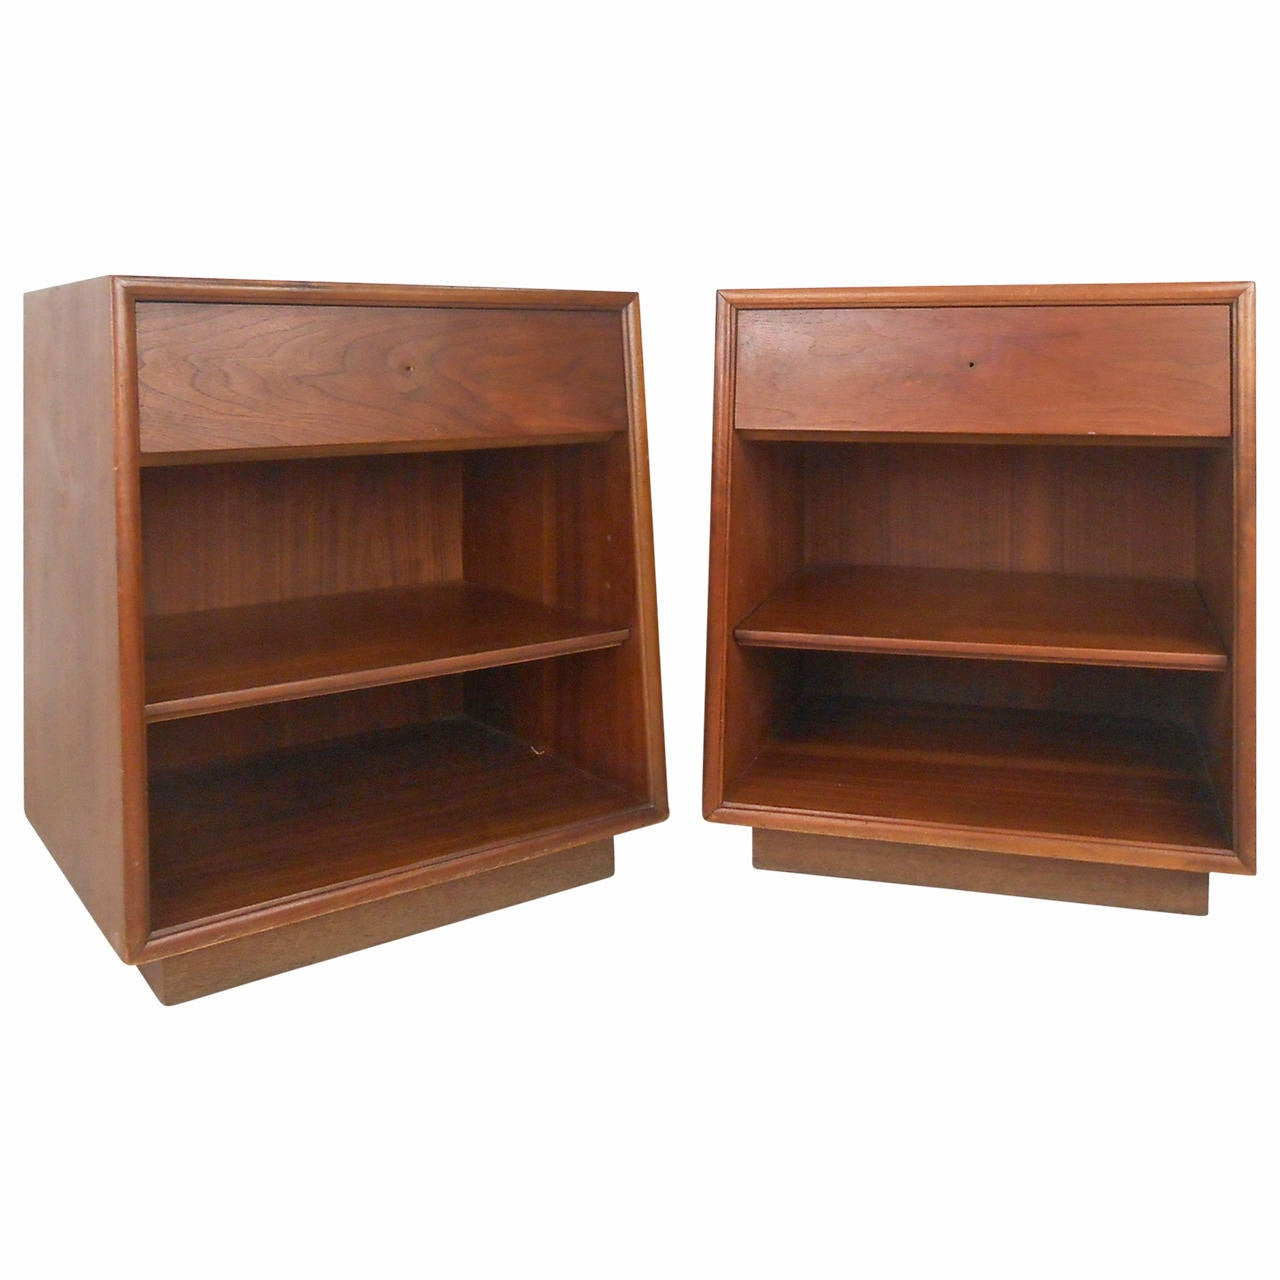 Pair of mid century modern nightstands by drexel for sale at 1stdibs